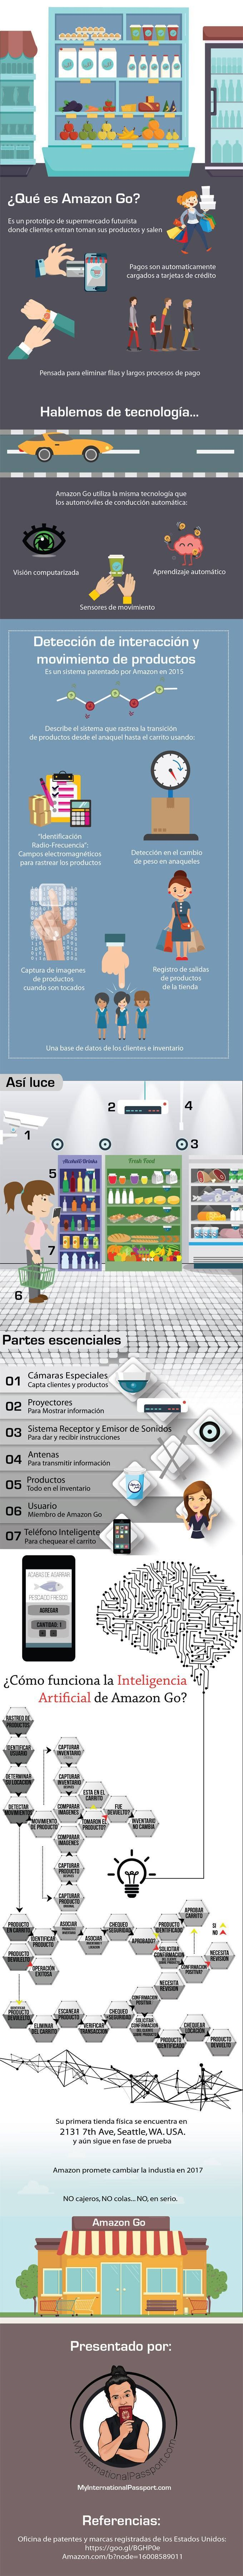 infografia_amazon_go_3-1